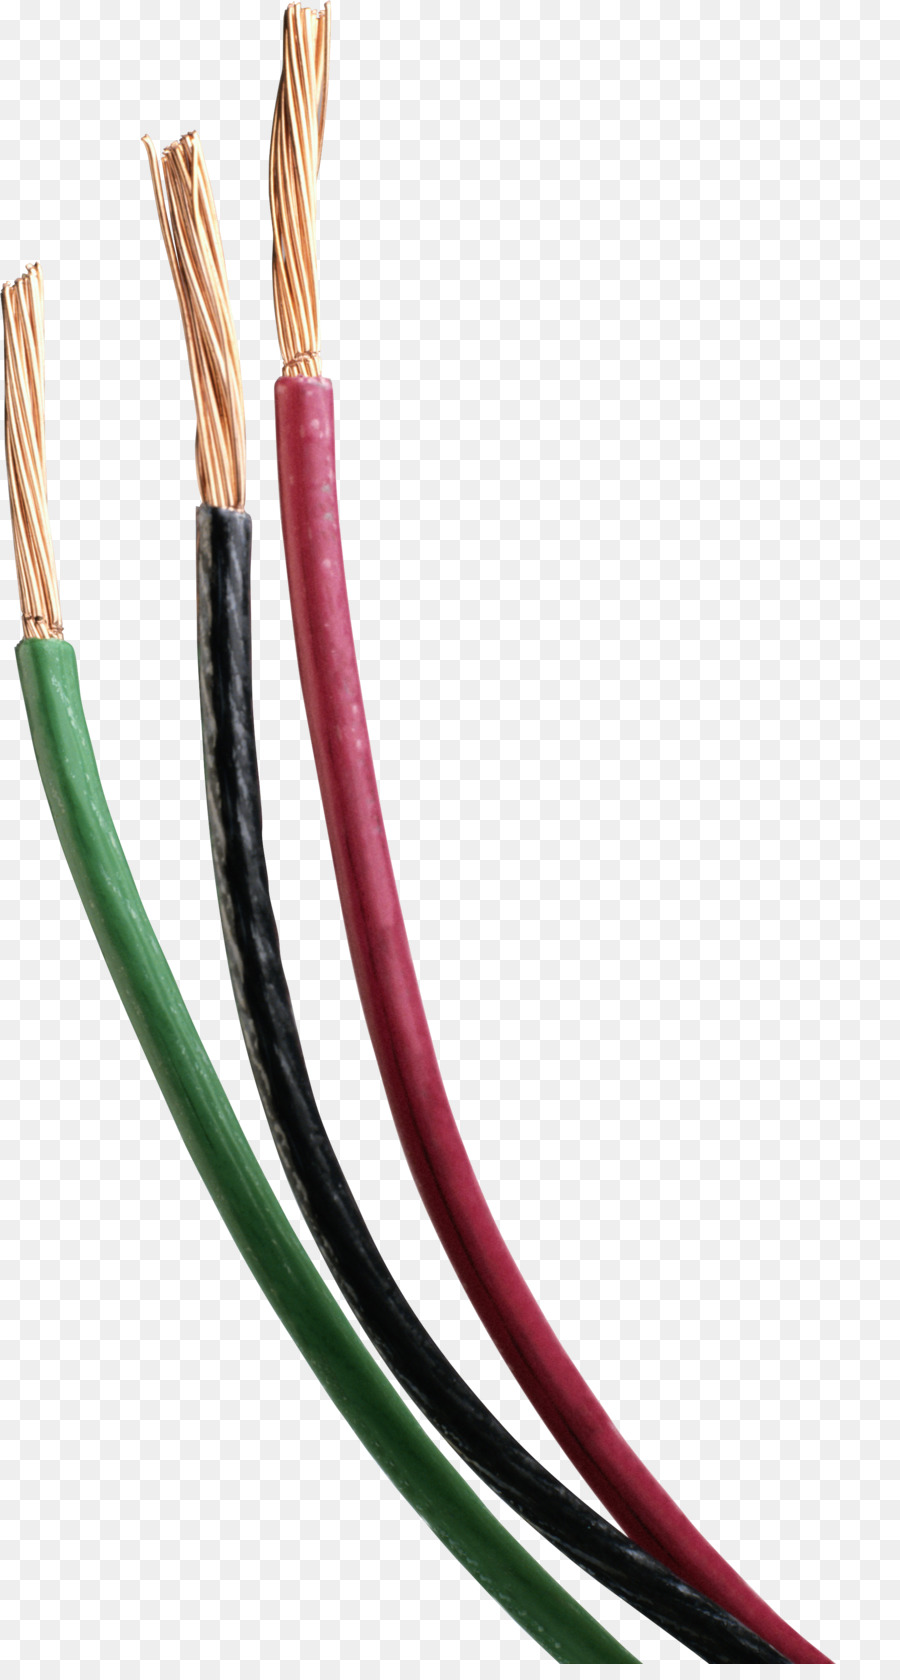 medium resolution of electrical wires cable electrical cable wire electronics accessory png